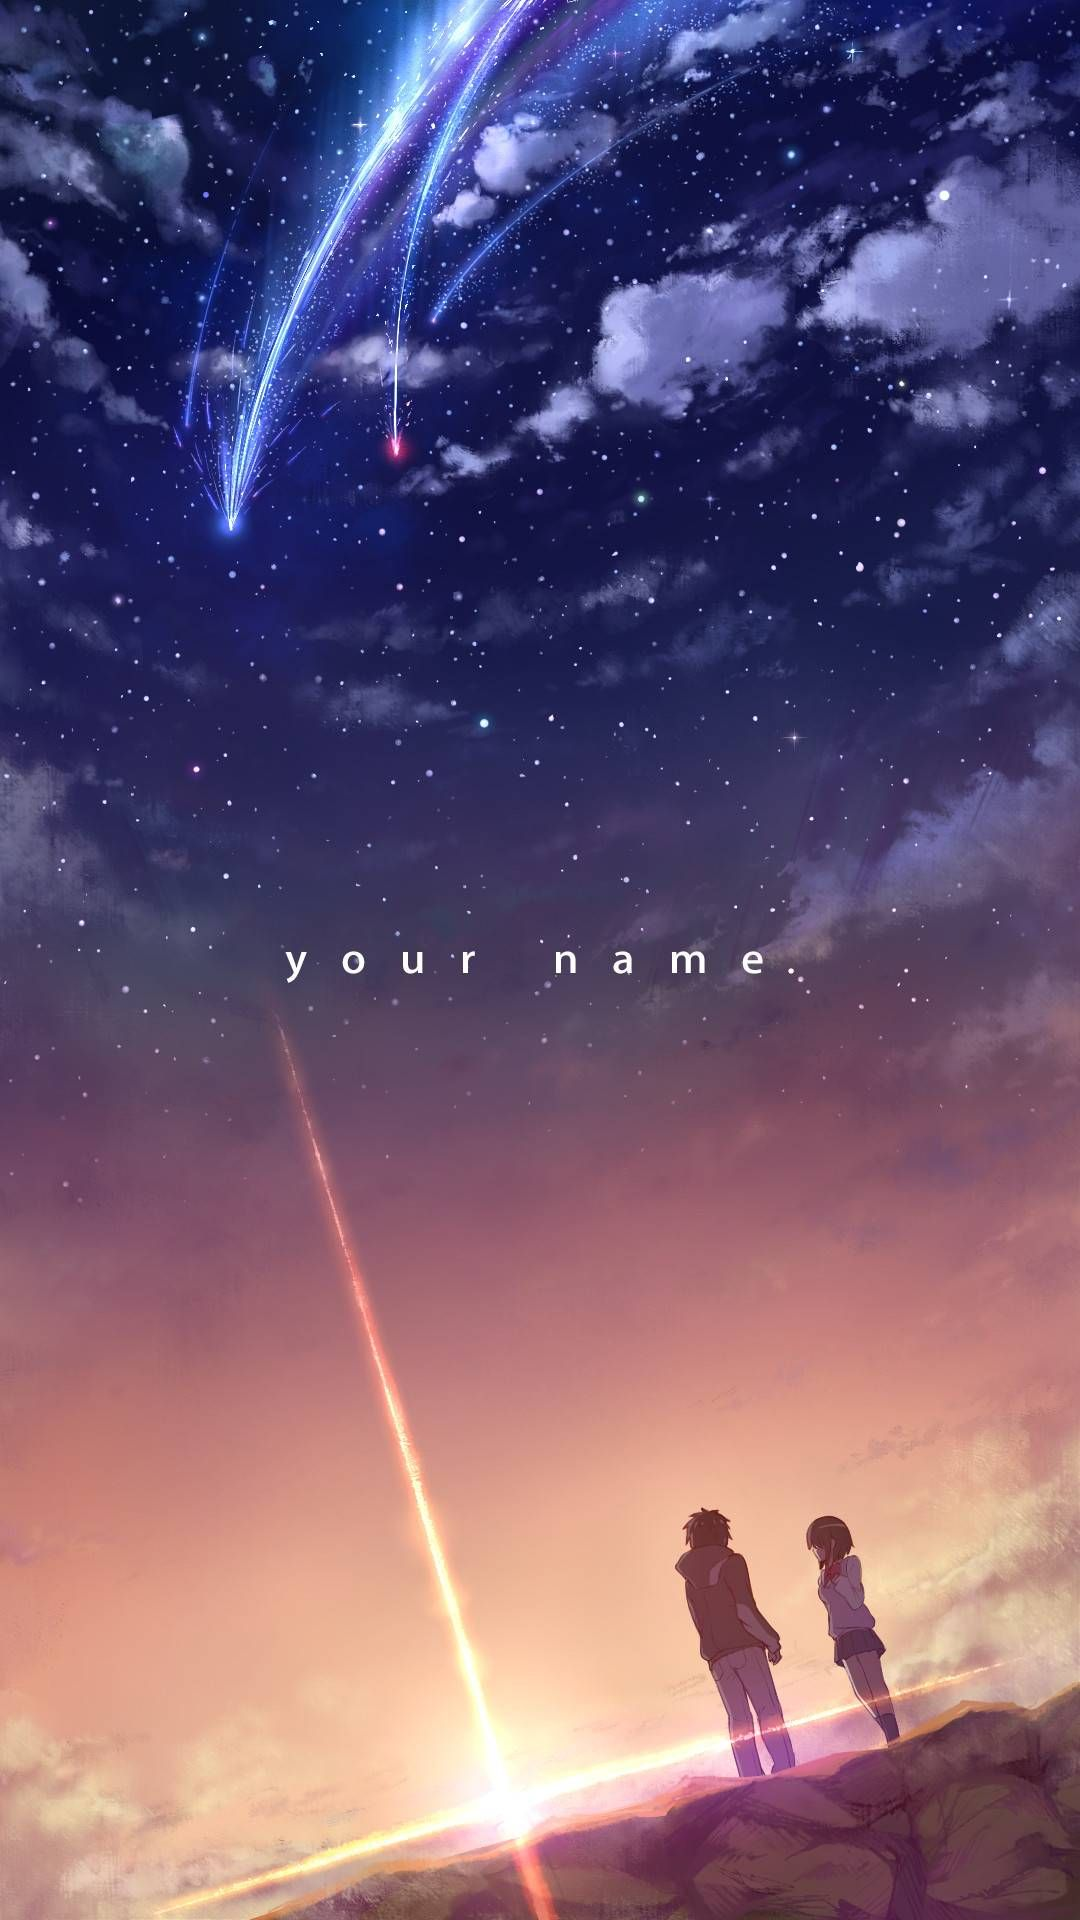 No Love Iphone Wallpaper : Your Name/Kimi no na wa (1080x1920) Japanese film ...